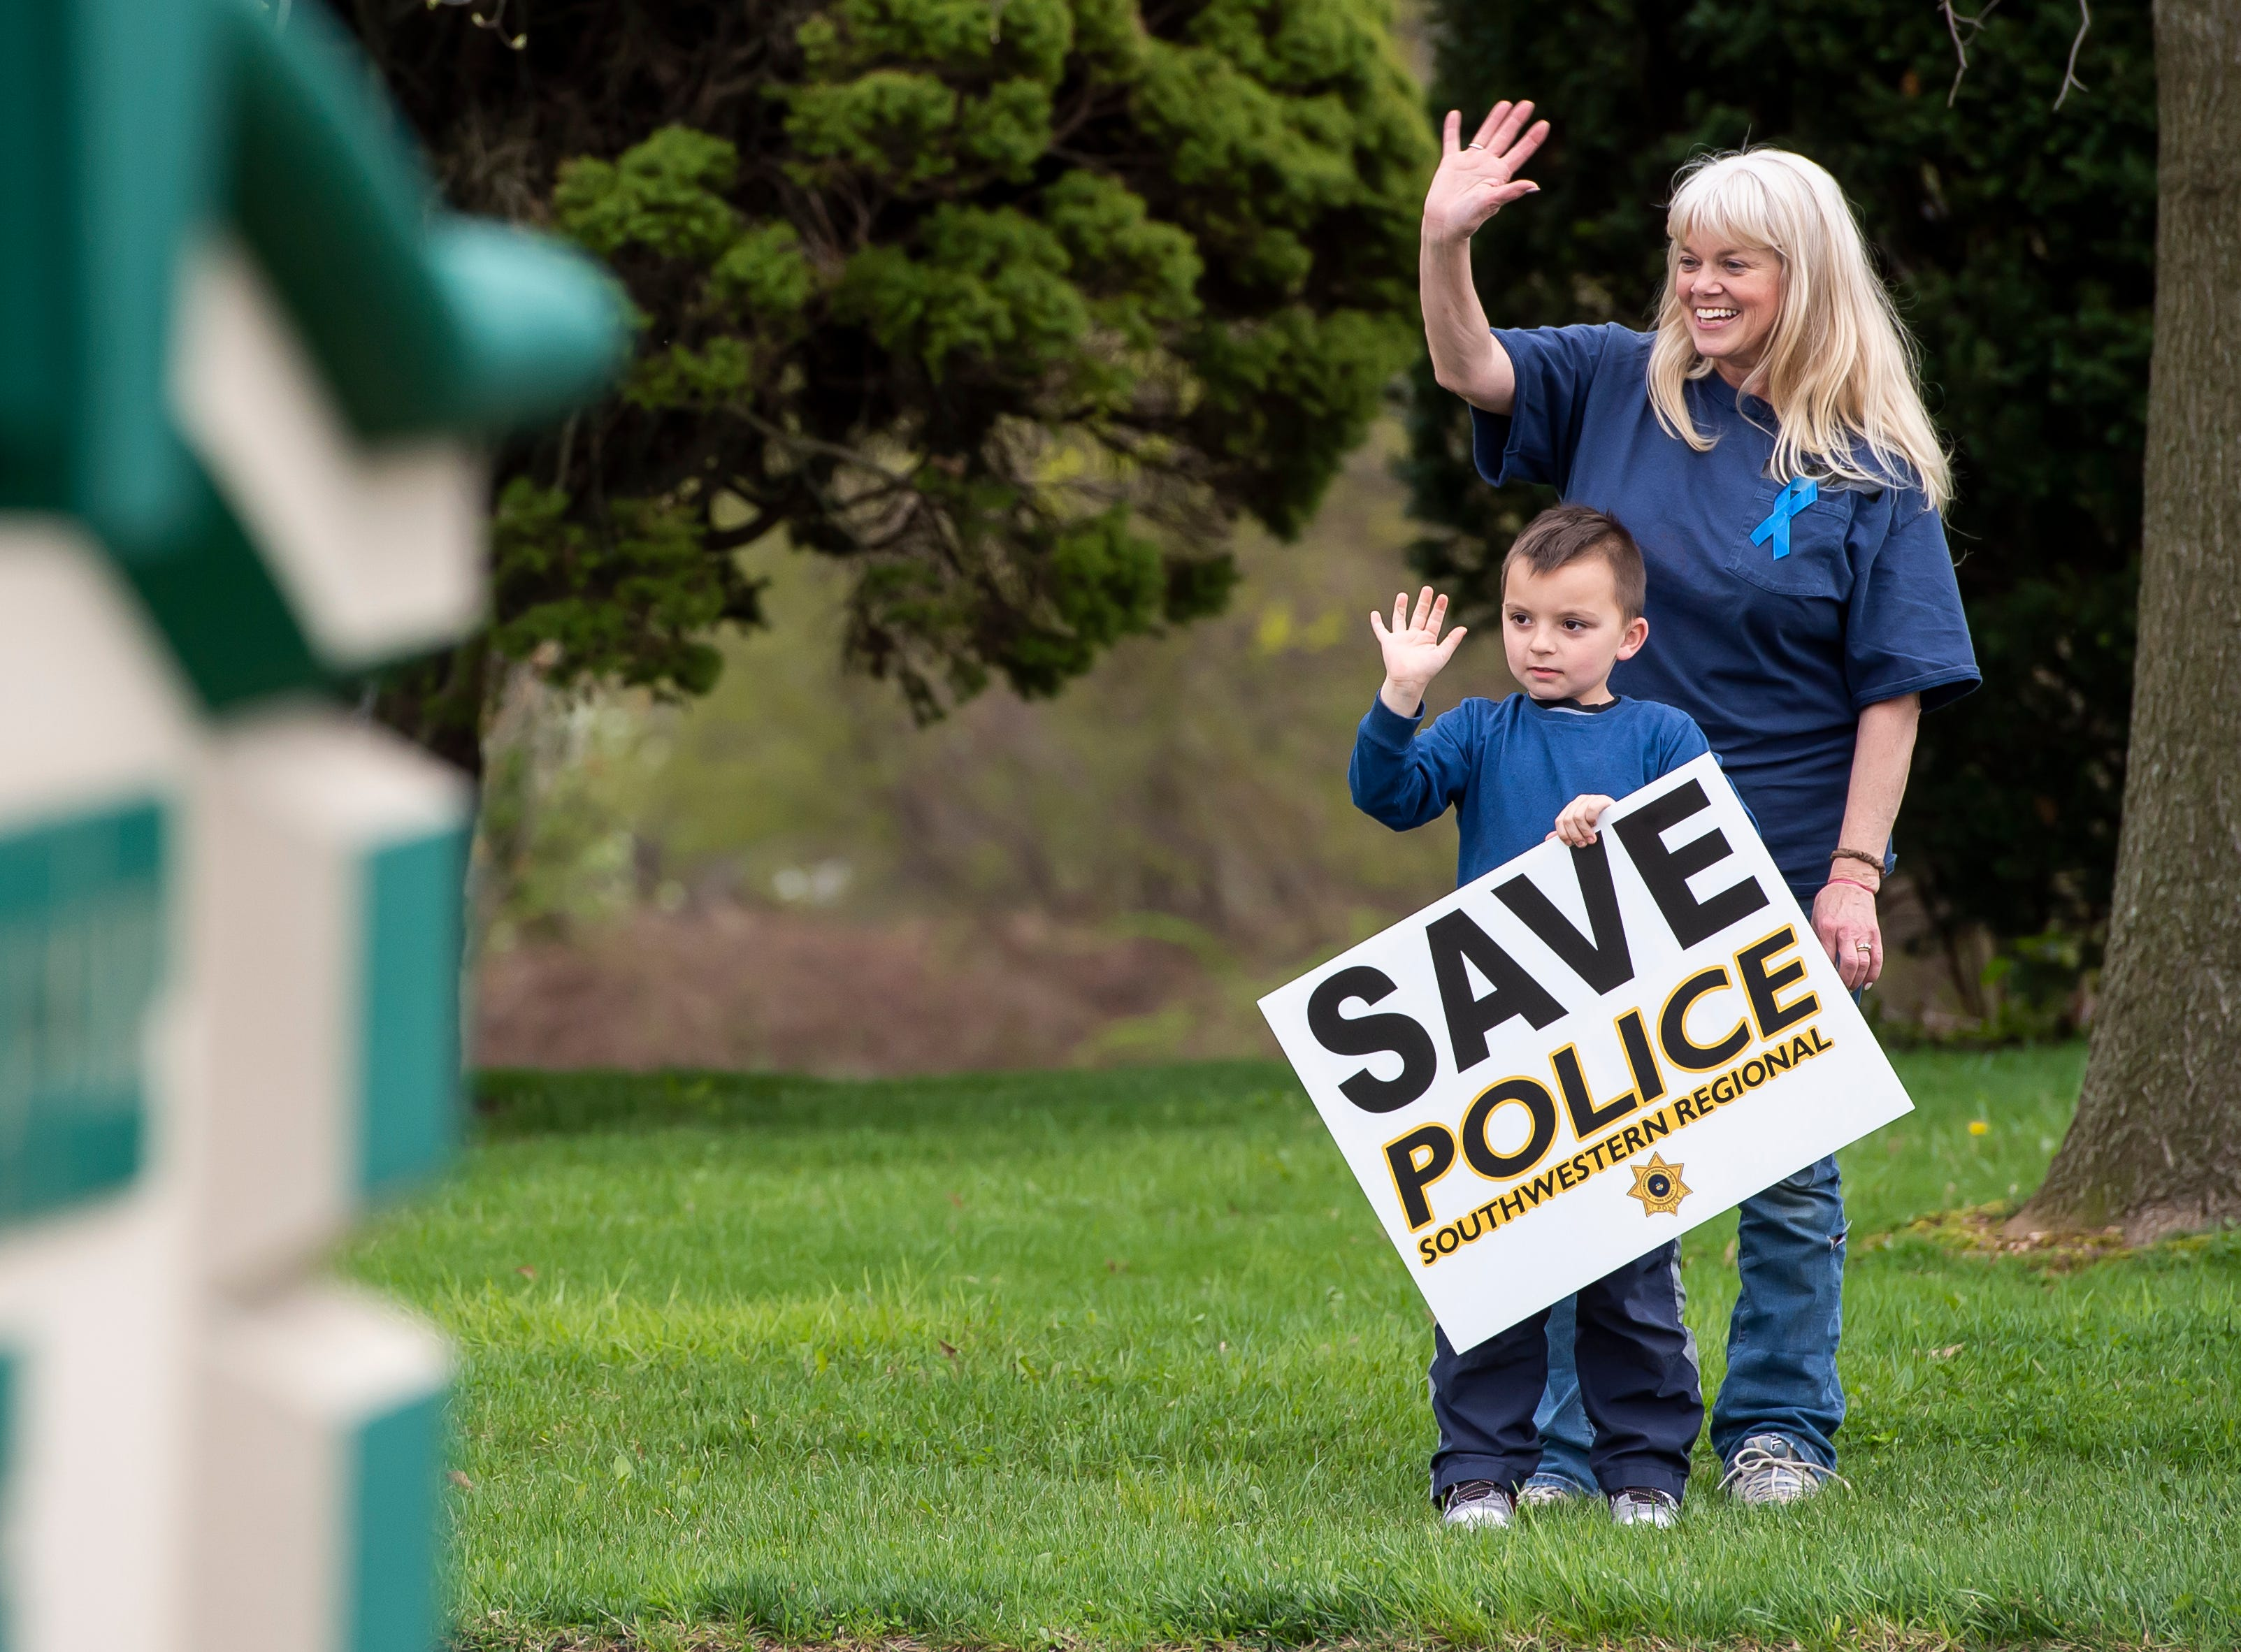 Linda Ziegler and her son, Jackson Ziegler, 7, wave to passing cars as they demonstrate in support of Southwestern Regional Police across the road from the North Codorus Township building on Tuesday, April 16, 2019.